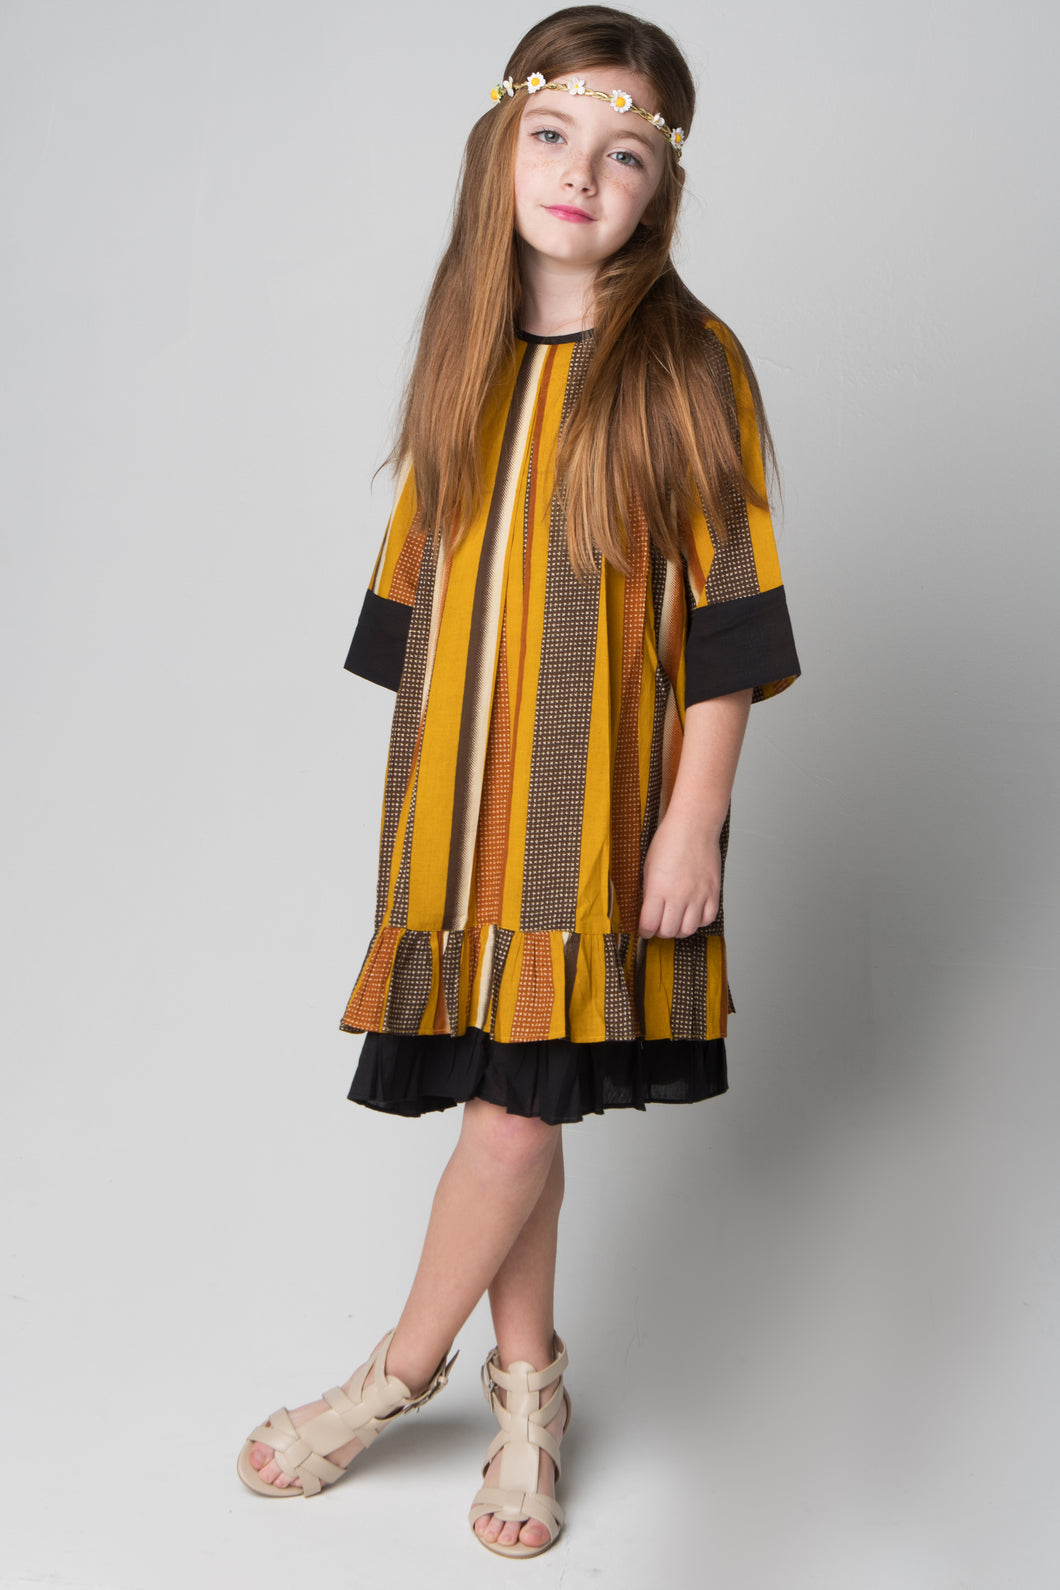 Black and Yellow Shift Dress - Kids Wholesale Boutique Clothing, Dress - Girls Dresses, Yo Baby Wholesale - Yo Baby